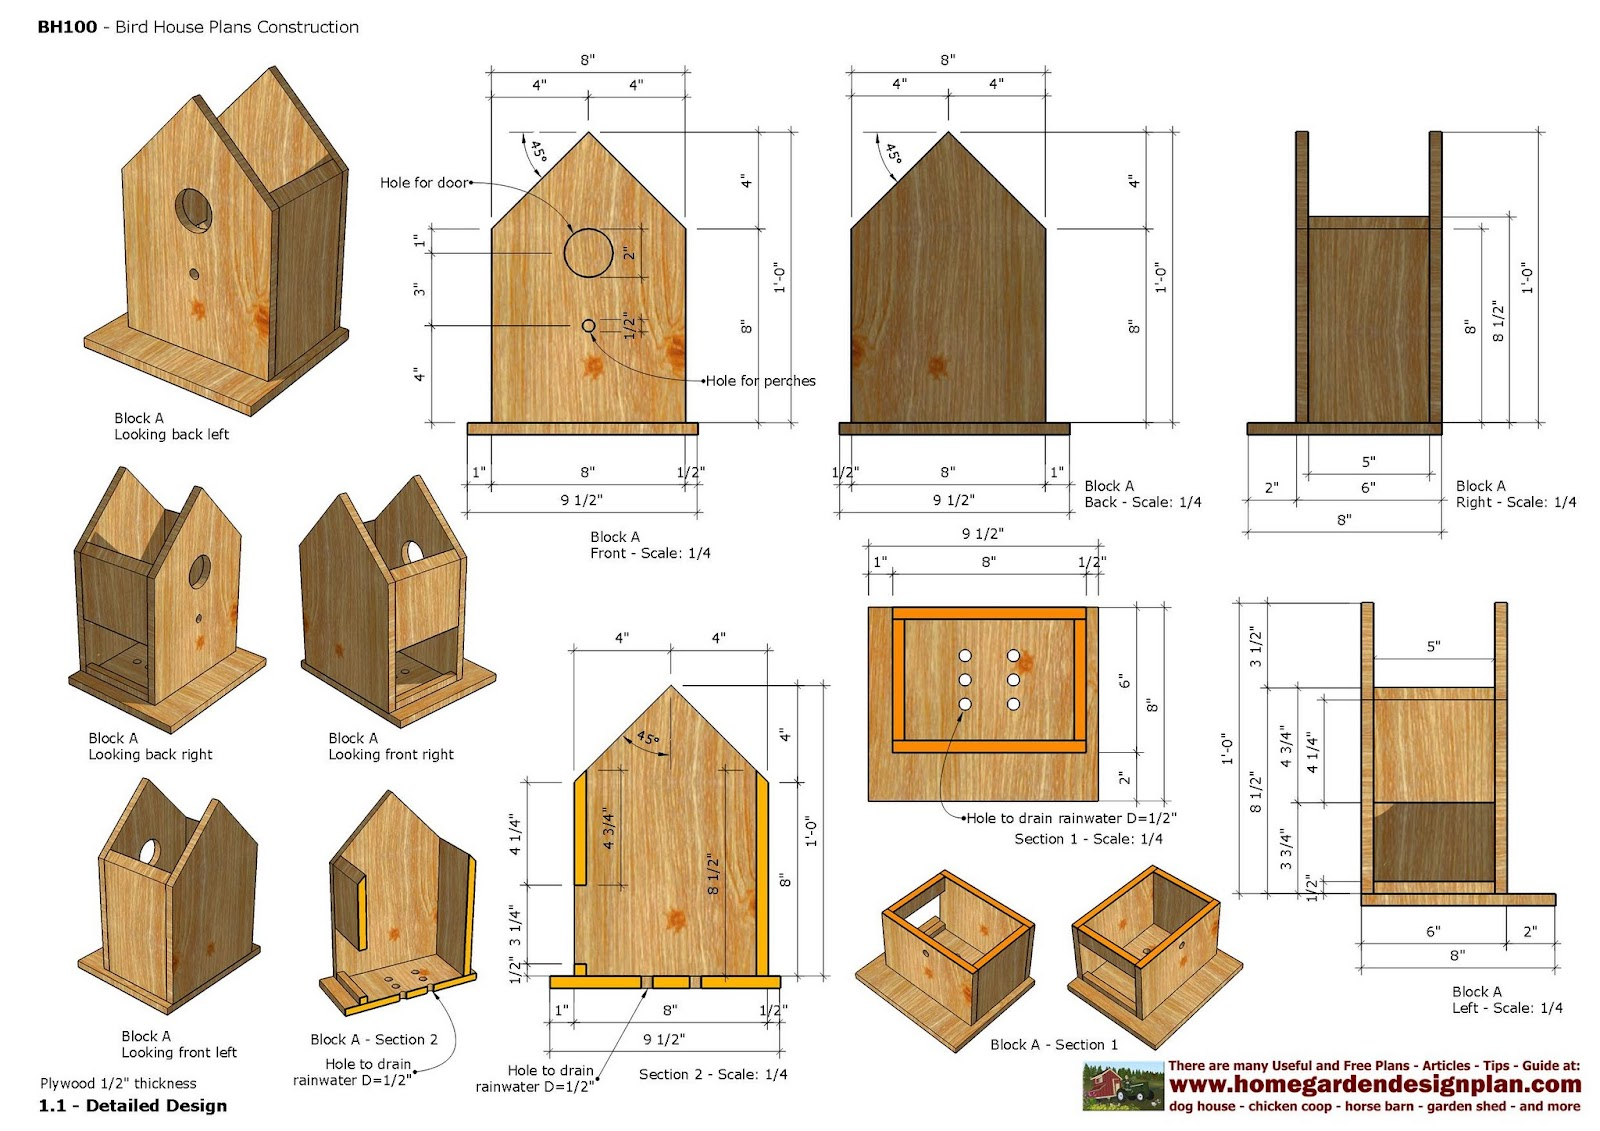 Home garden plans bh bird house plans construction for Www houseplans